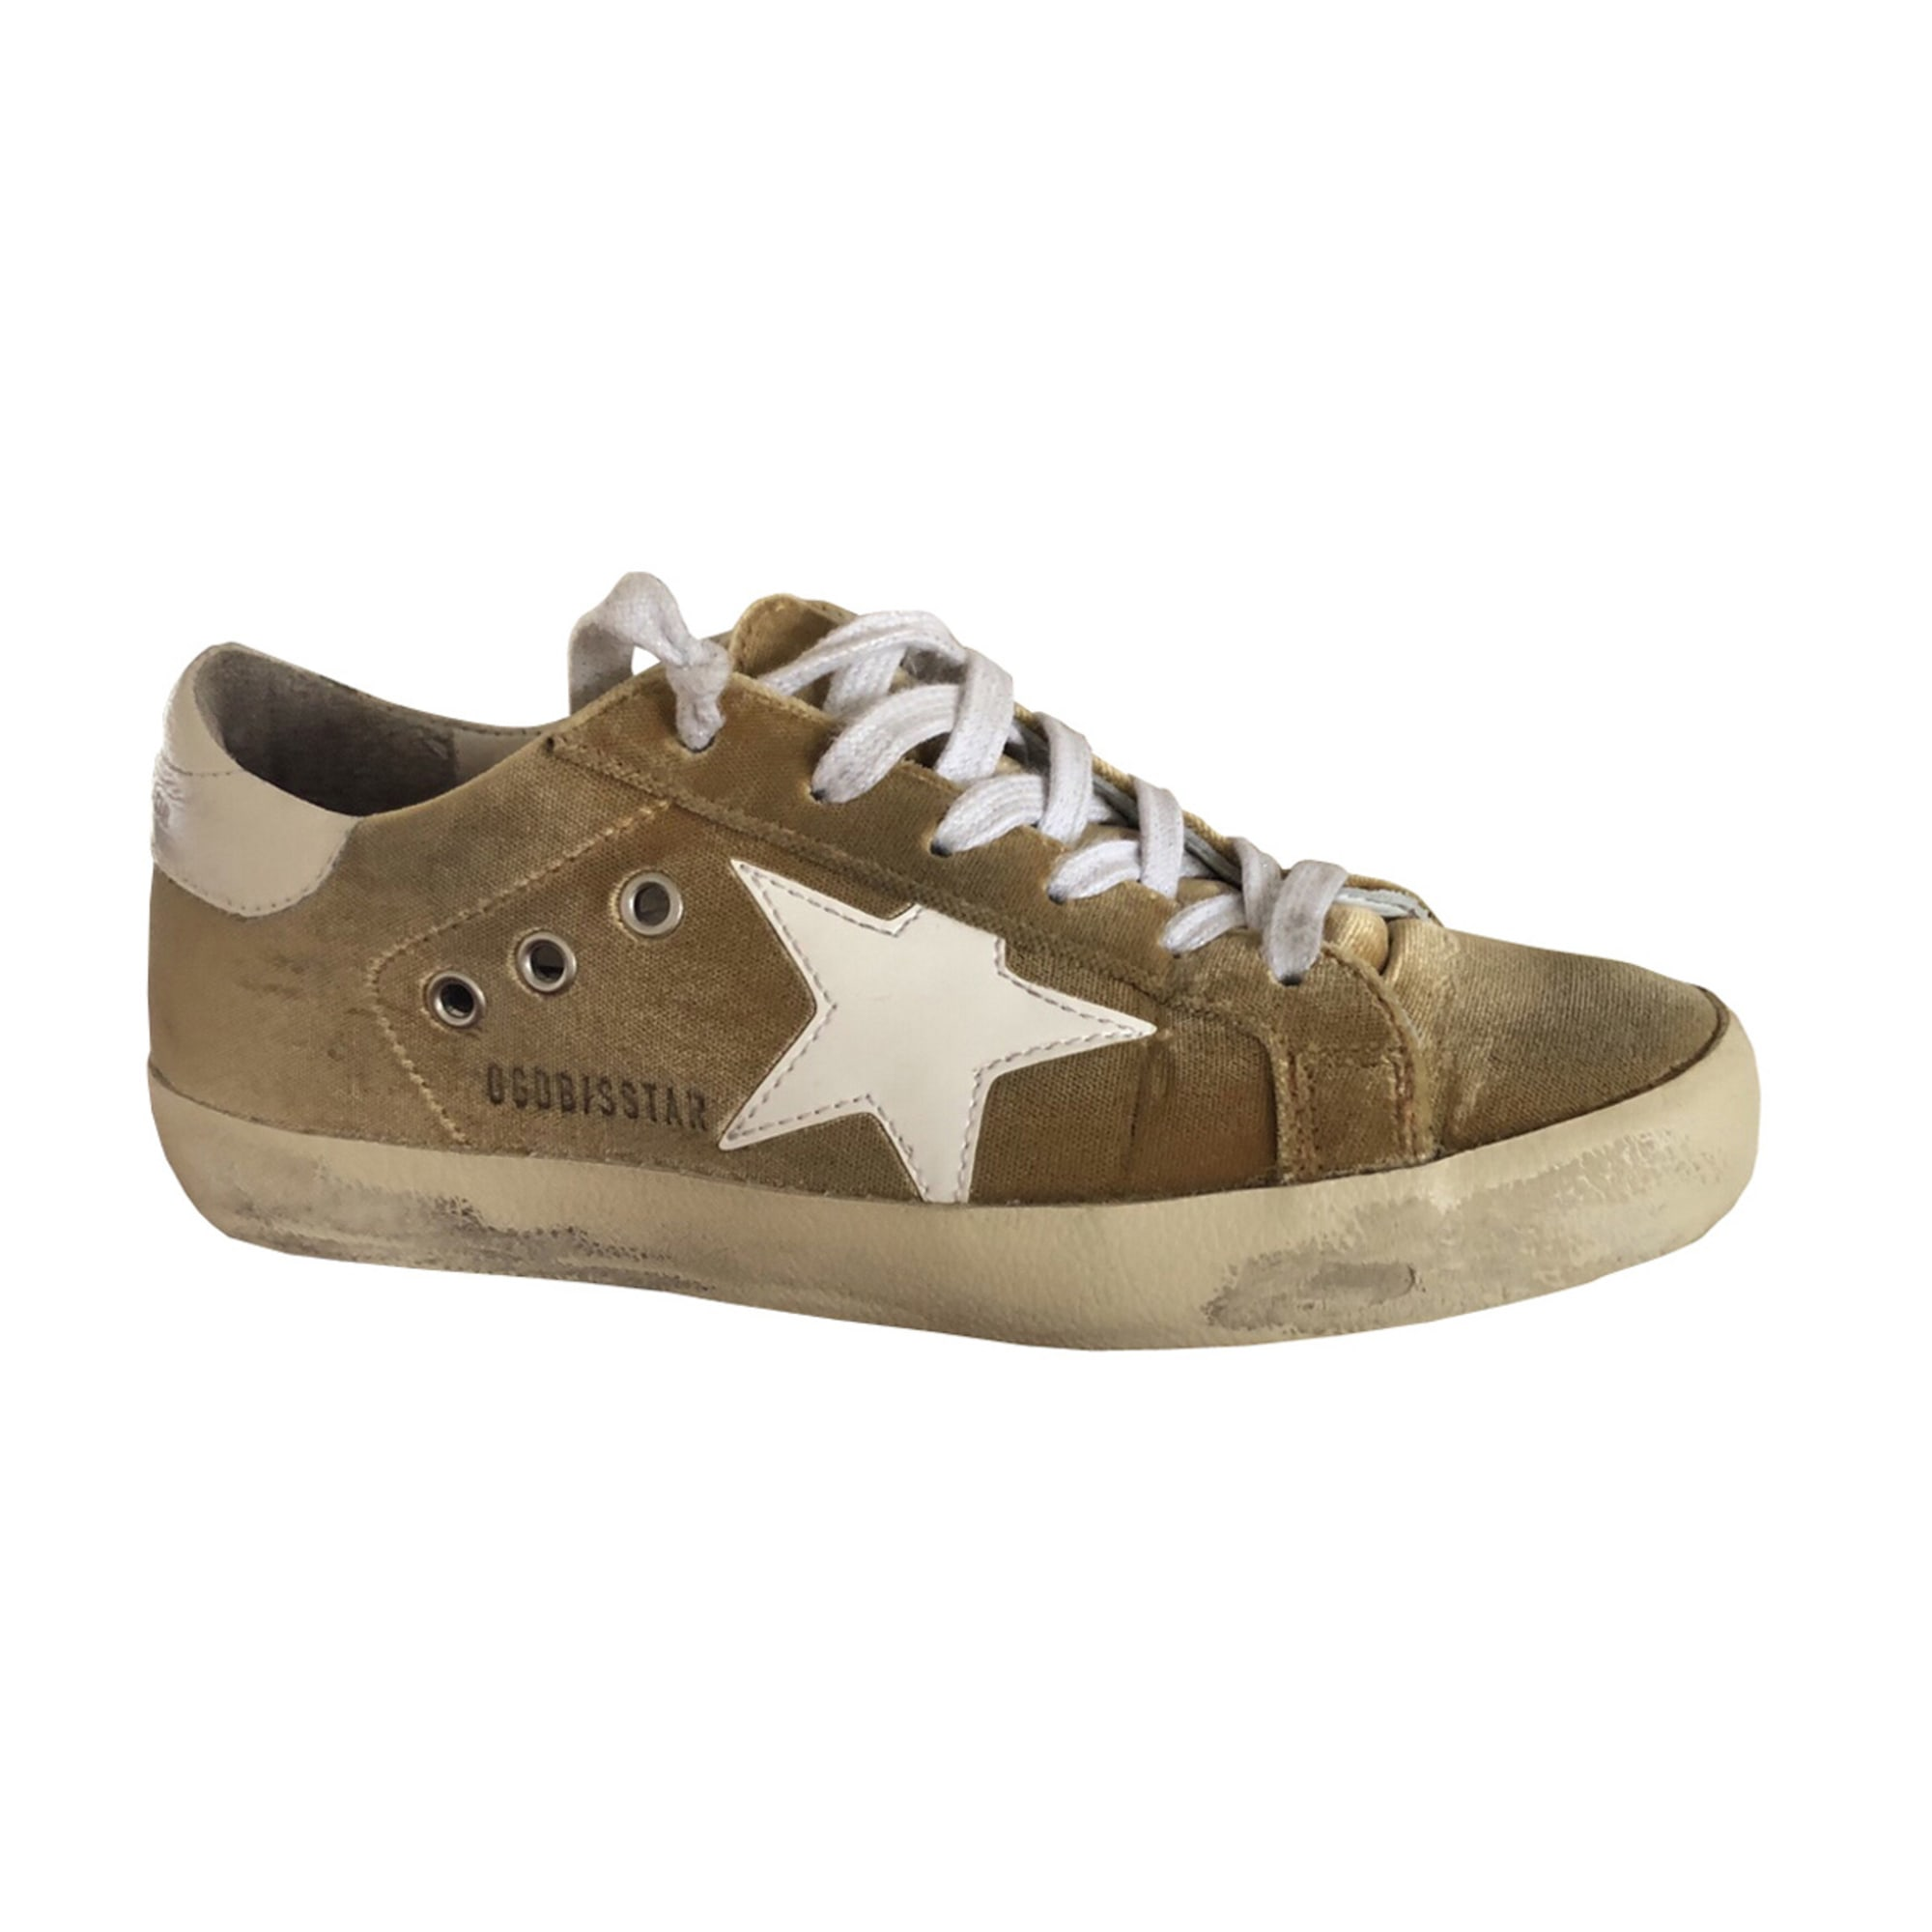 Baskets GOLDEN GOOSE Jaune